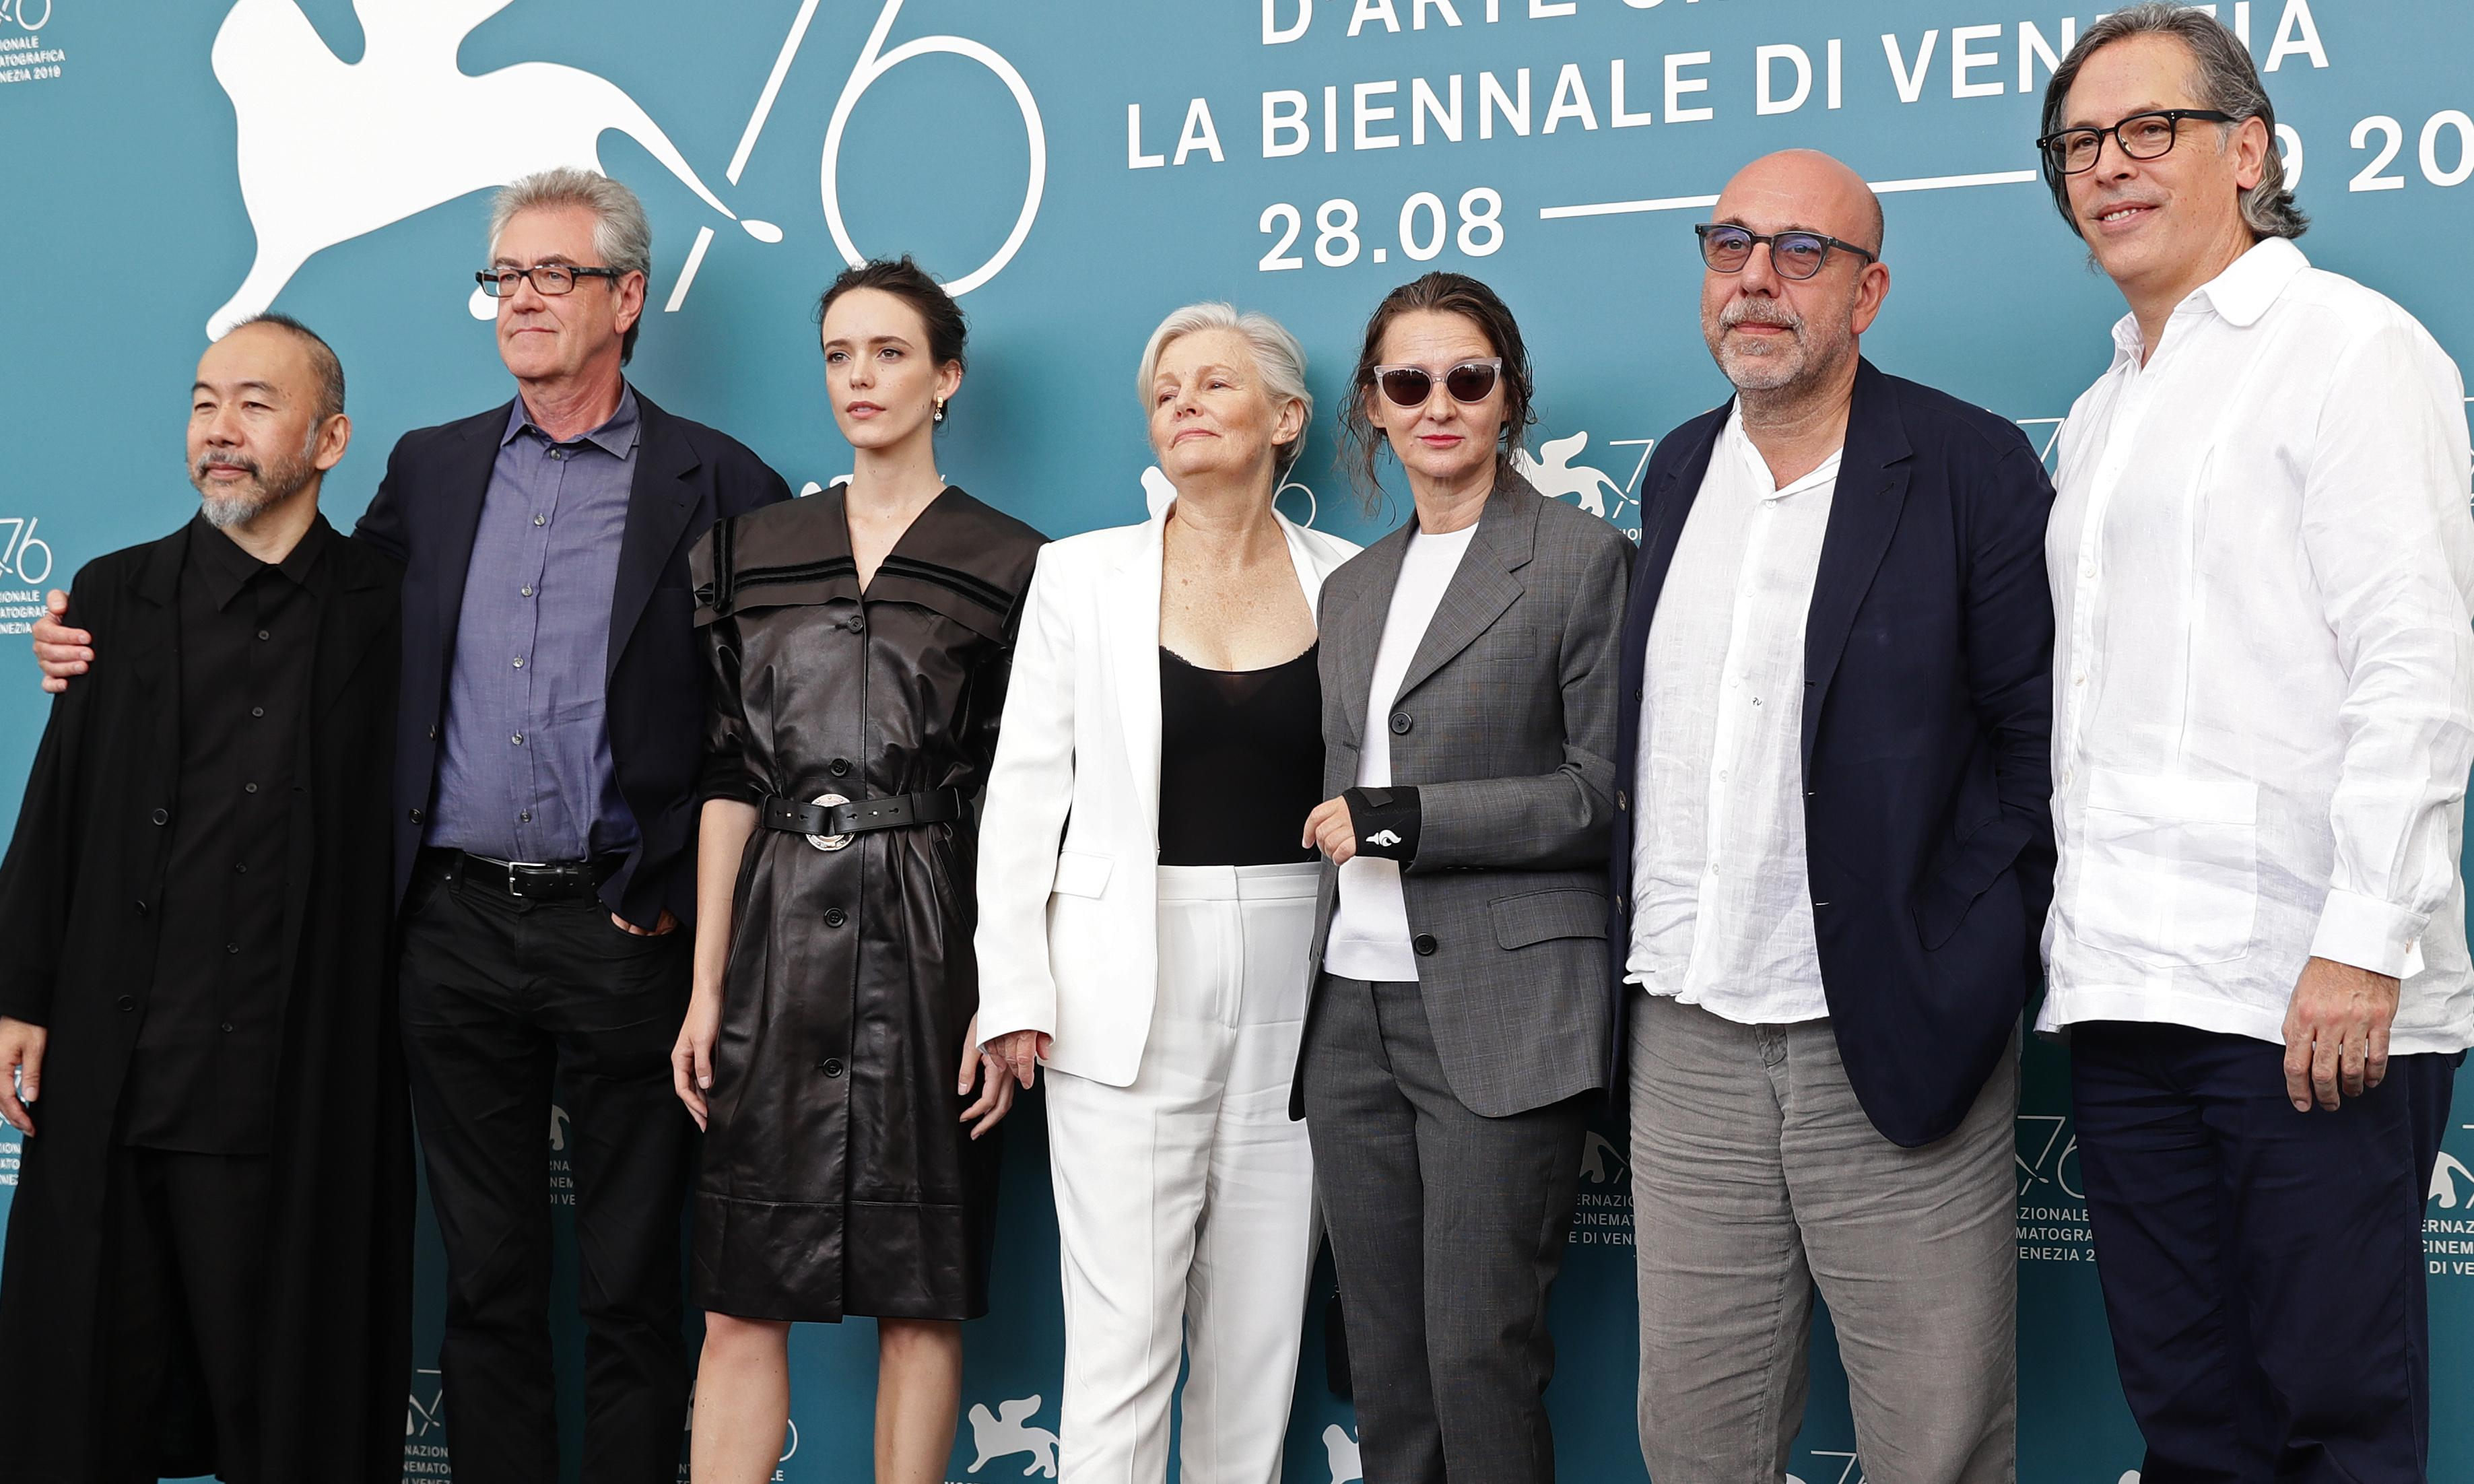 Jury members clash over Roman Polanski as Venice film festival opens